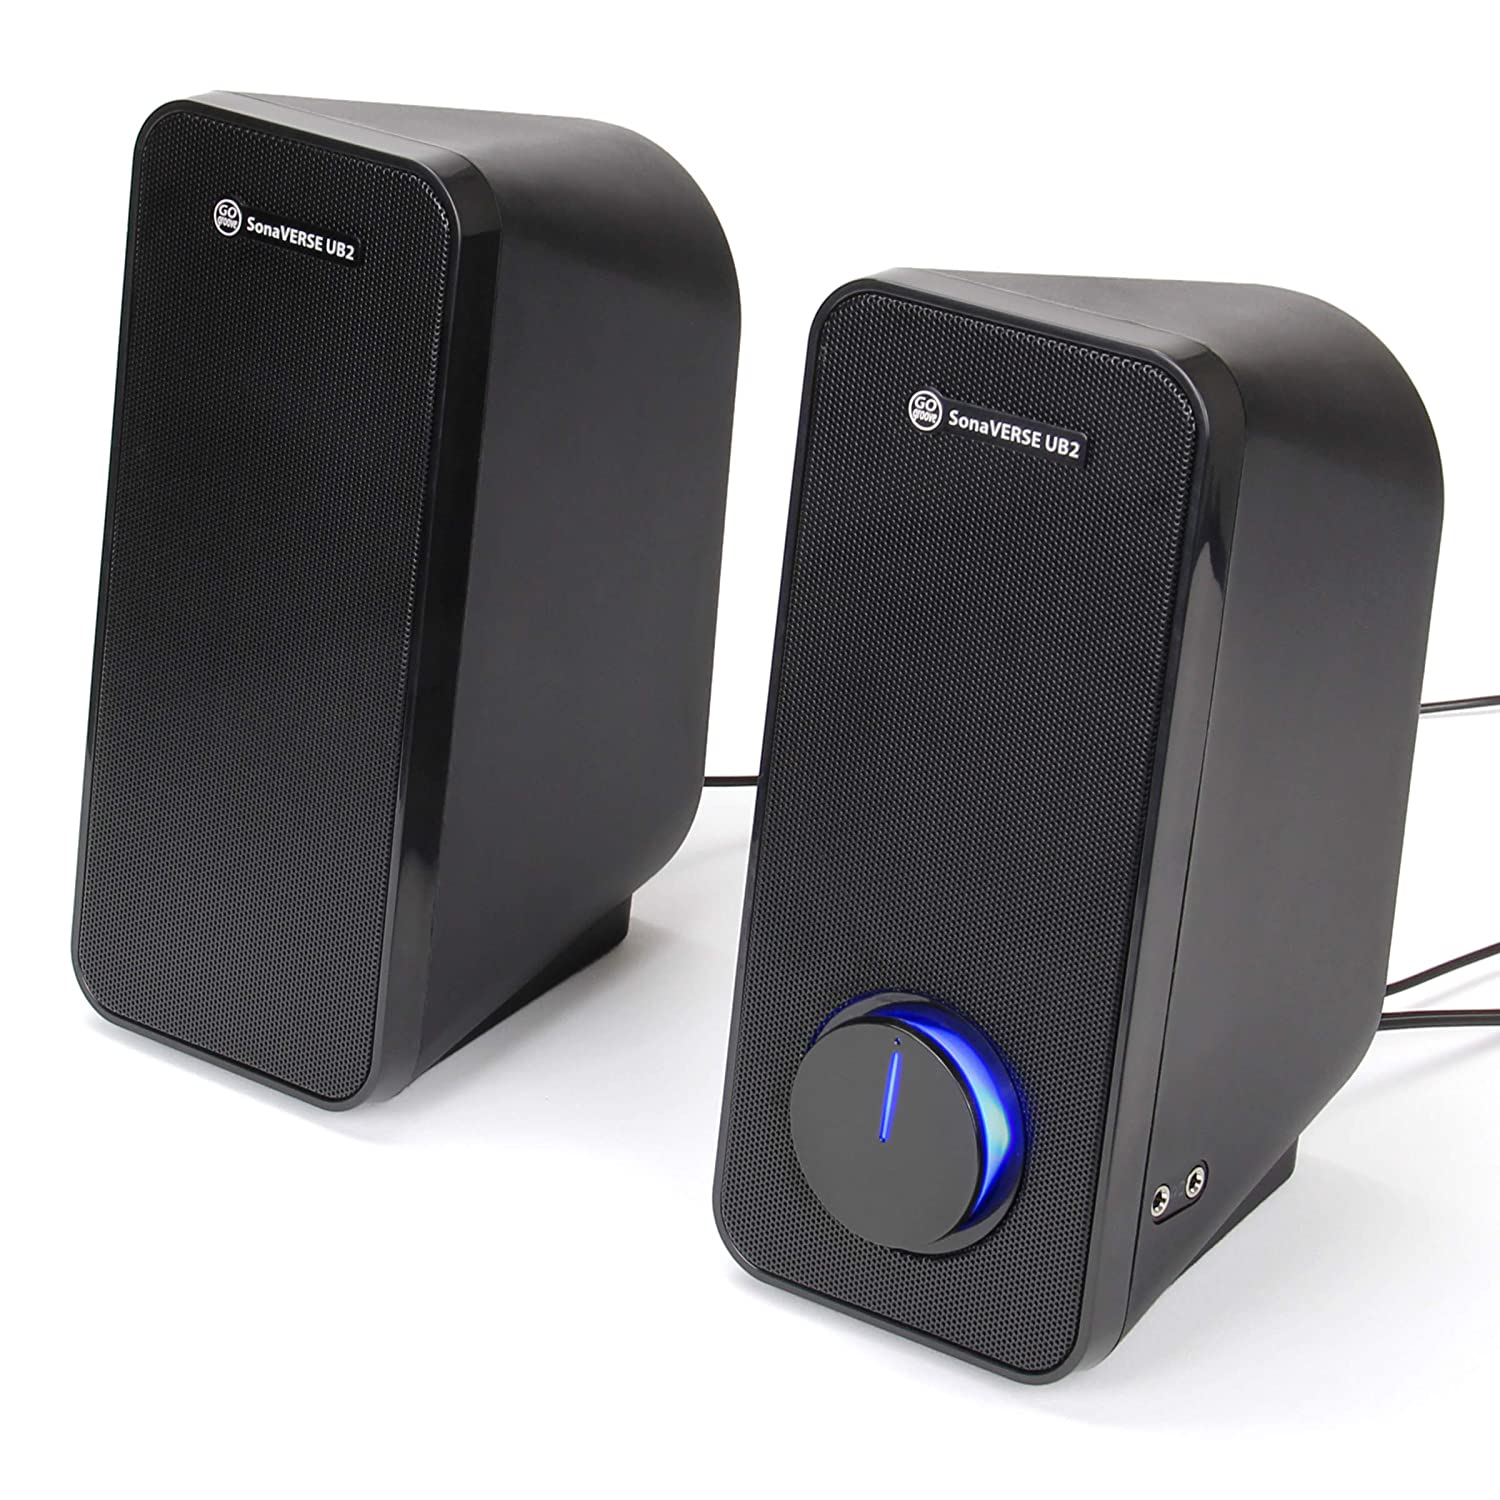 GOgroove Computer Speakers for Desktop and Laptop – USB Speakers for Desktop Computer with Loud and Clear 2-Way Drivers for 32W of Power and Bass, Built-in Headphone AUX Input Ports, LED Volume Knob